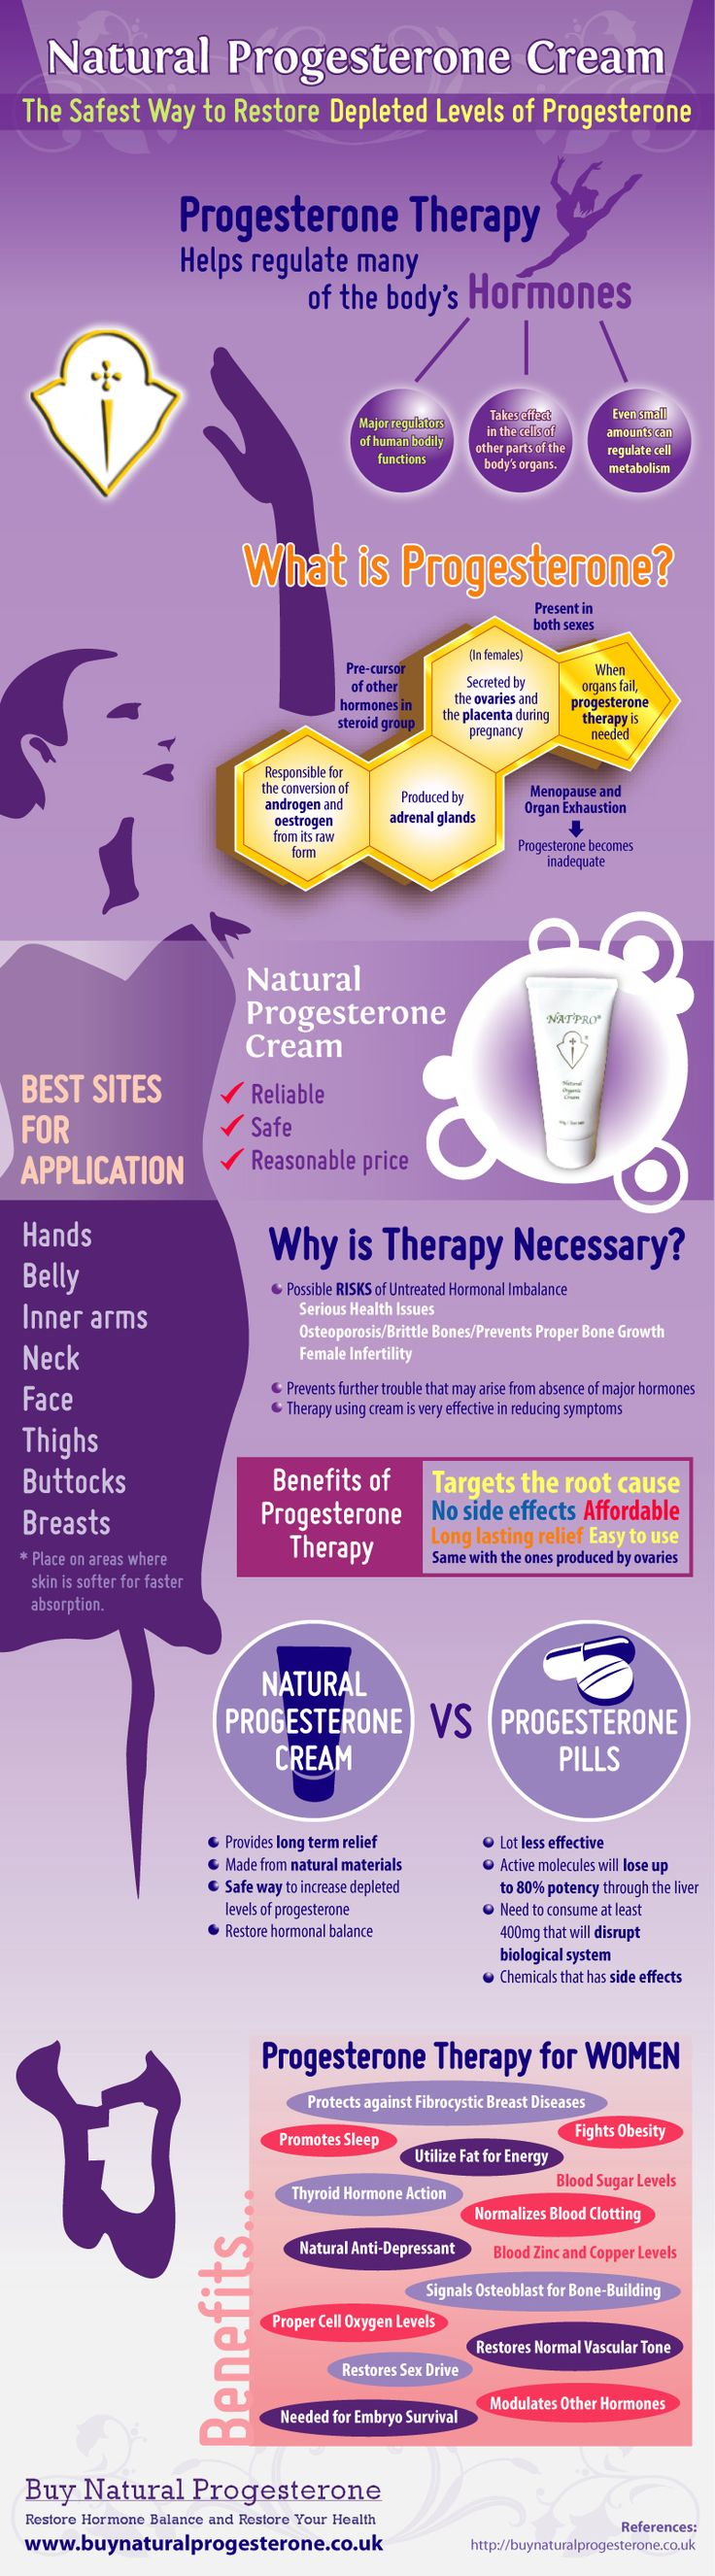 Natural Progesterone Cream: The Safest Way to Restore Depleted Levels of Progesterone